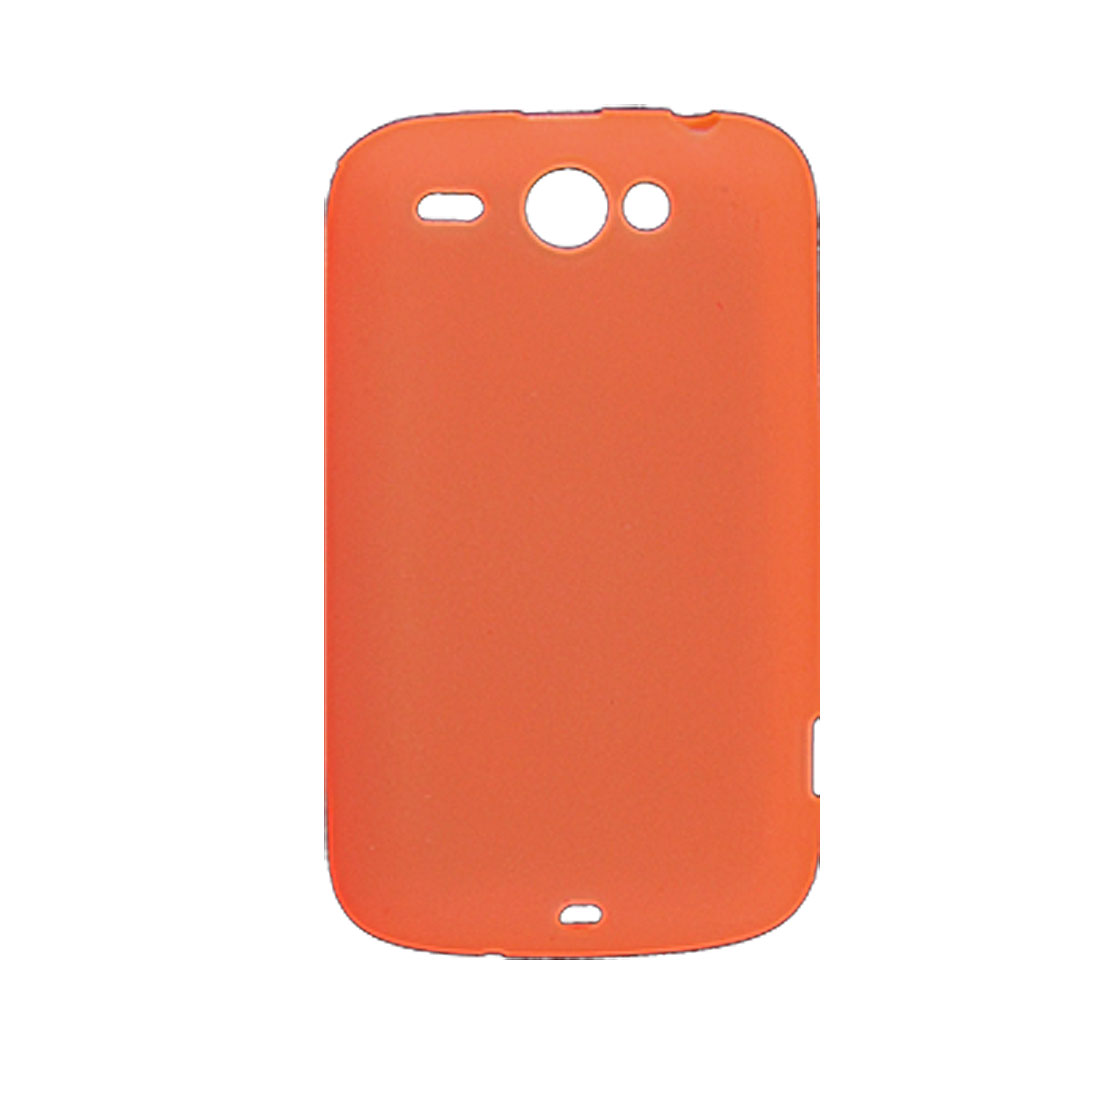 Orange Red Soft Plastic Protective Case for HTC Wildfire G8